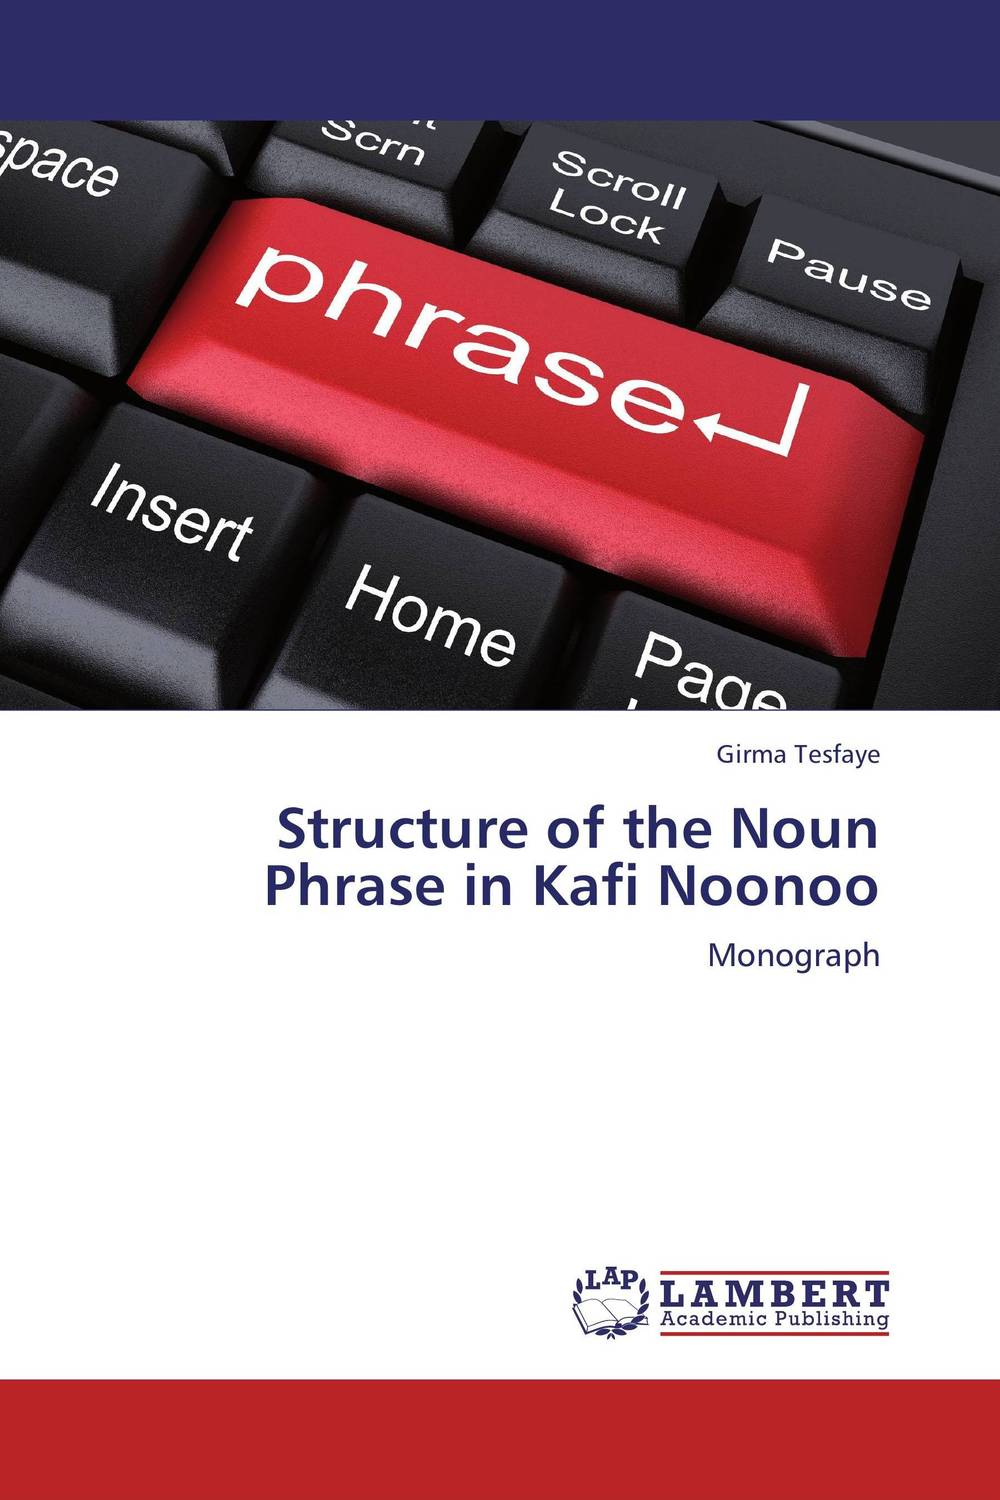 Structure of the Noun Phrase in Kafi Noonoo alain patrick the manager s phrase book 3000 powerful phrases that put you in command in any situation